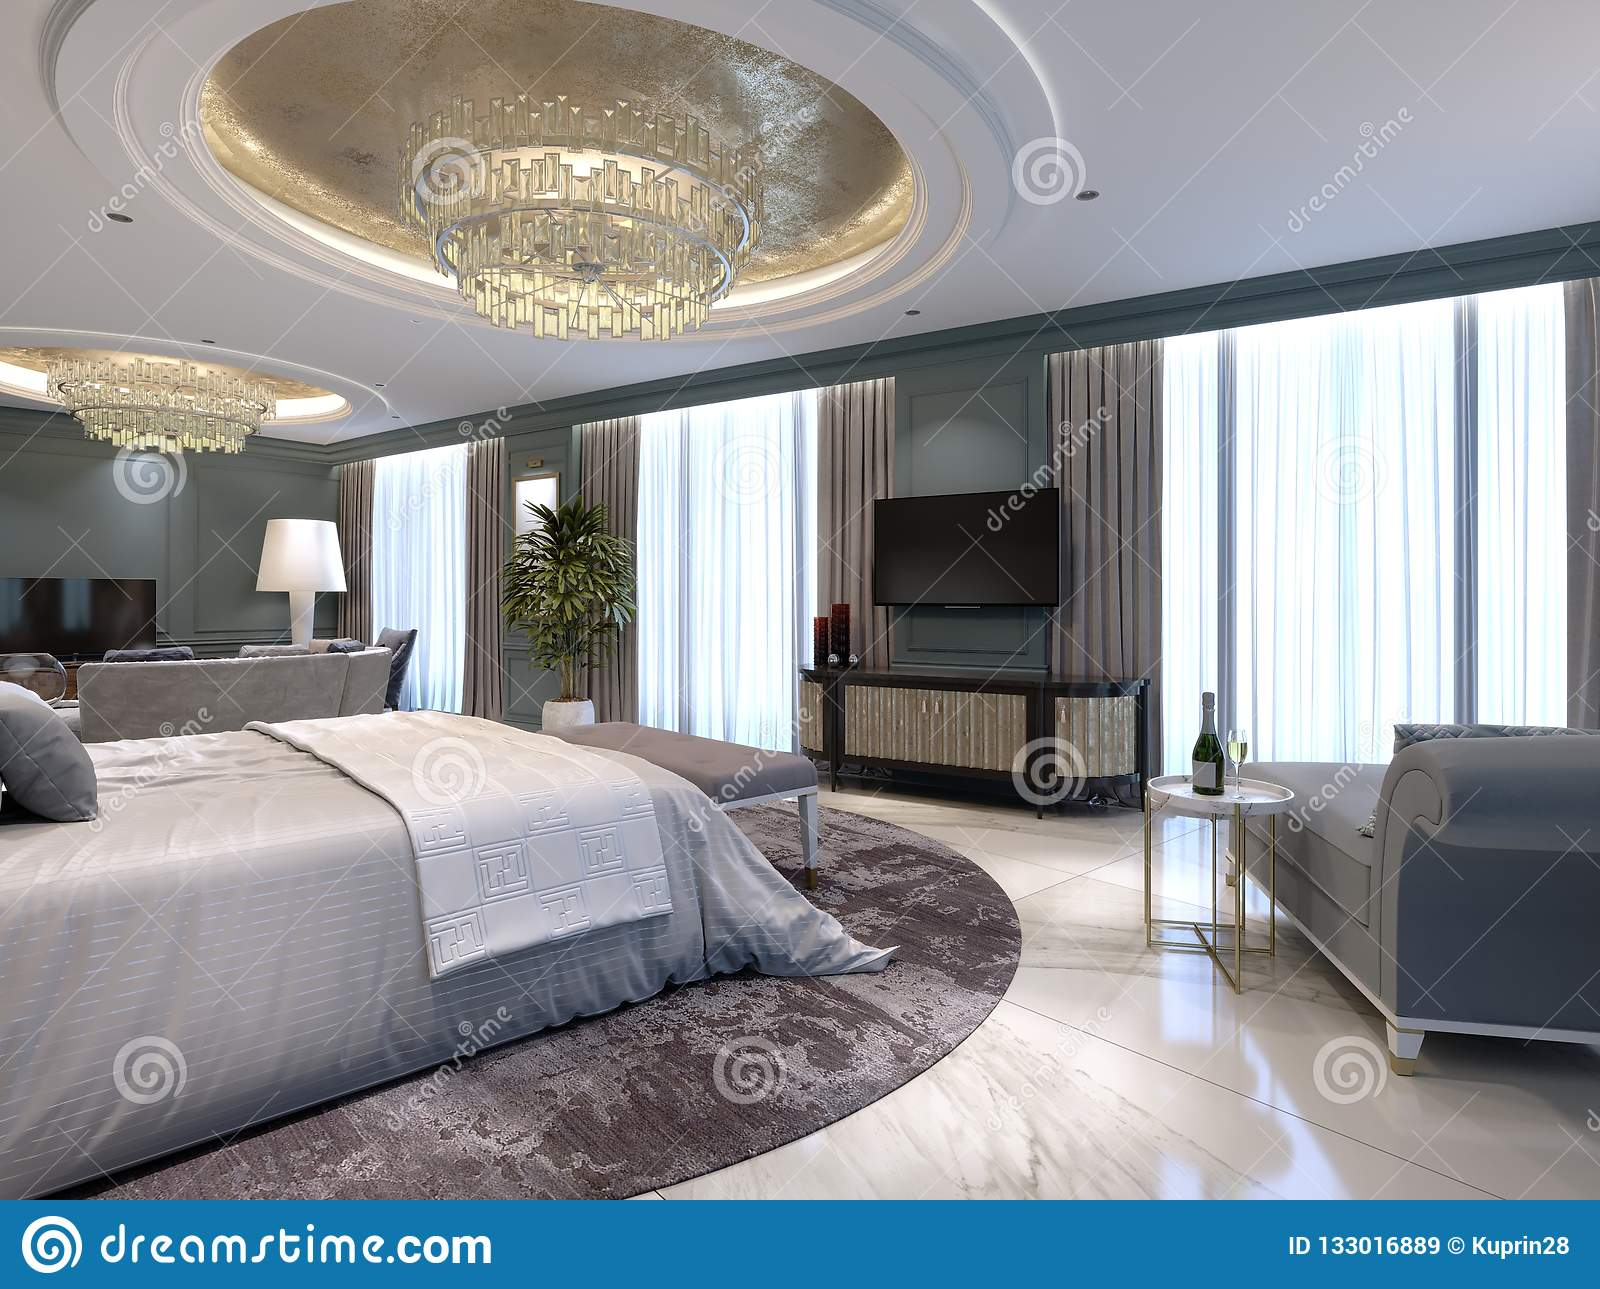 Luxury Apartments With A Bedroom And Living Area In